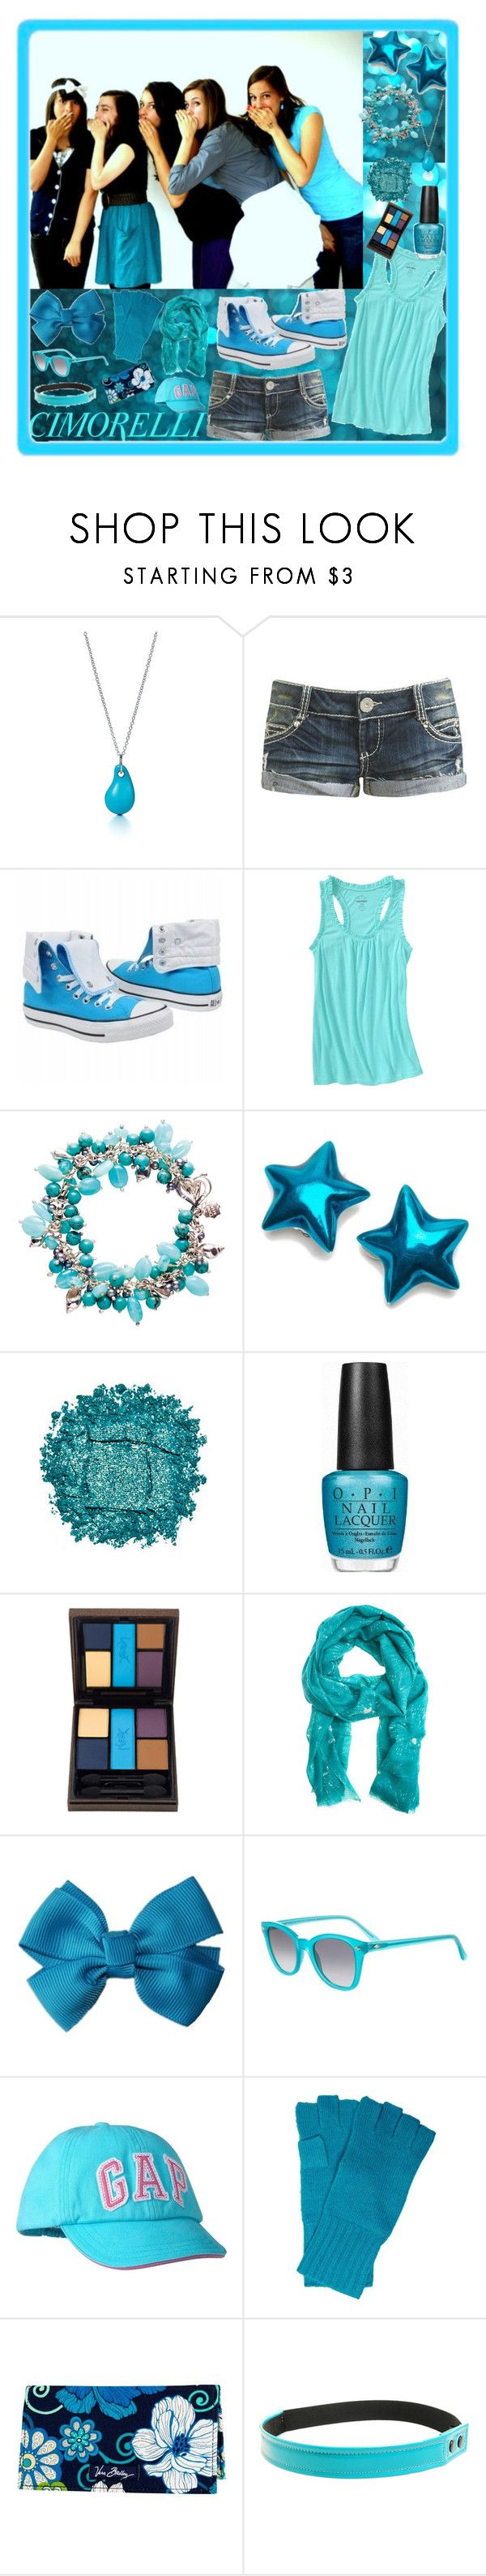 """""""Cimorelli <3"""" by andrej4e-xoxo ❤ liked on Polyvore featuring Elsa Peretti, Wet Seal, Converse, Old Navy, Dower & Hall, Urban Decay, OPI, Yves Saint Laurent, Virginia Johnson and RETROSPECS"""